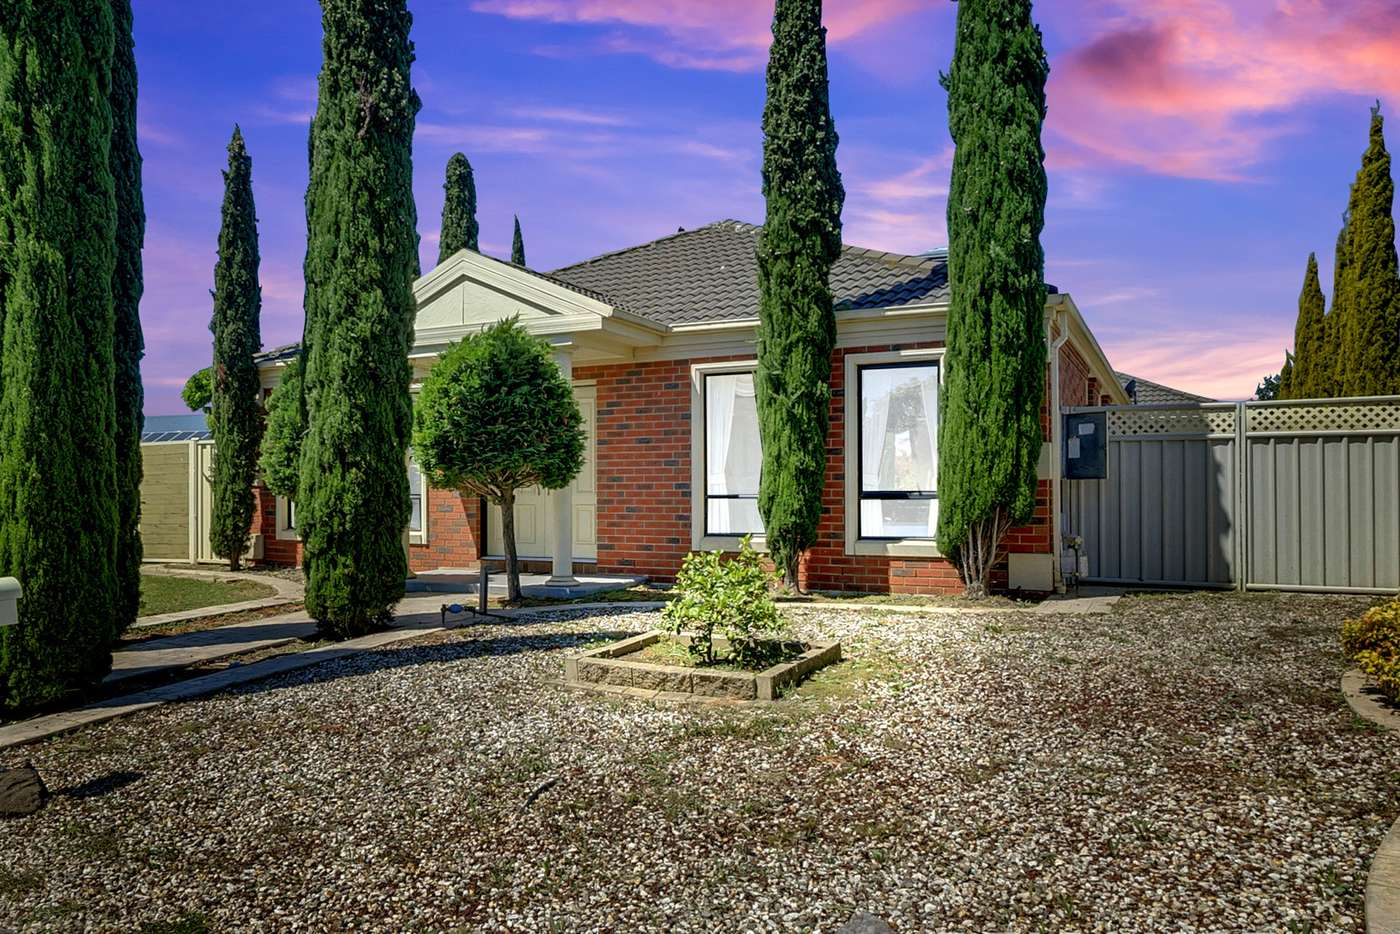 Main view of Homely house listing, 54 Wyperfeld Circuit, Caroline Springs VIC 3023